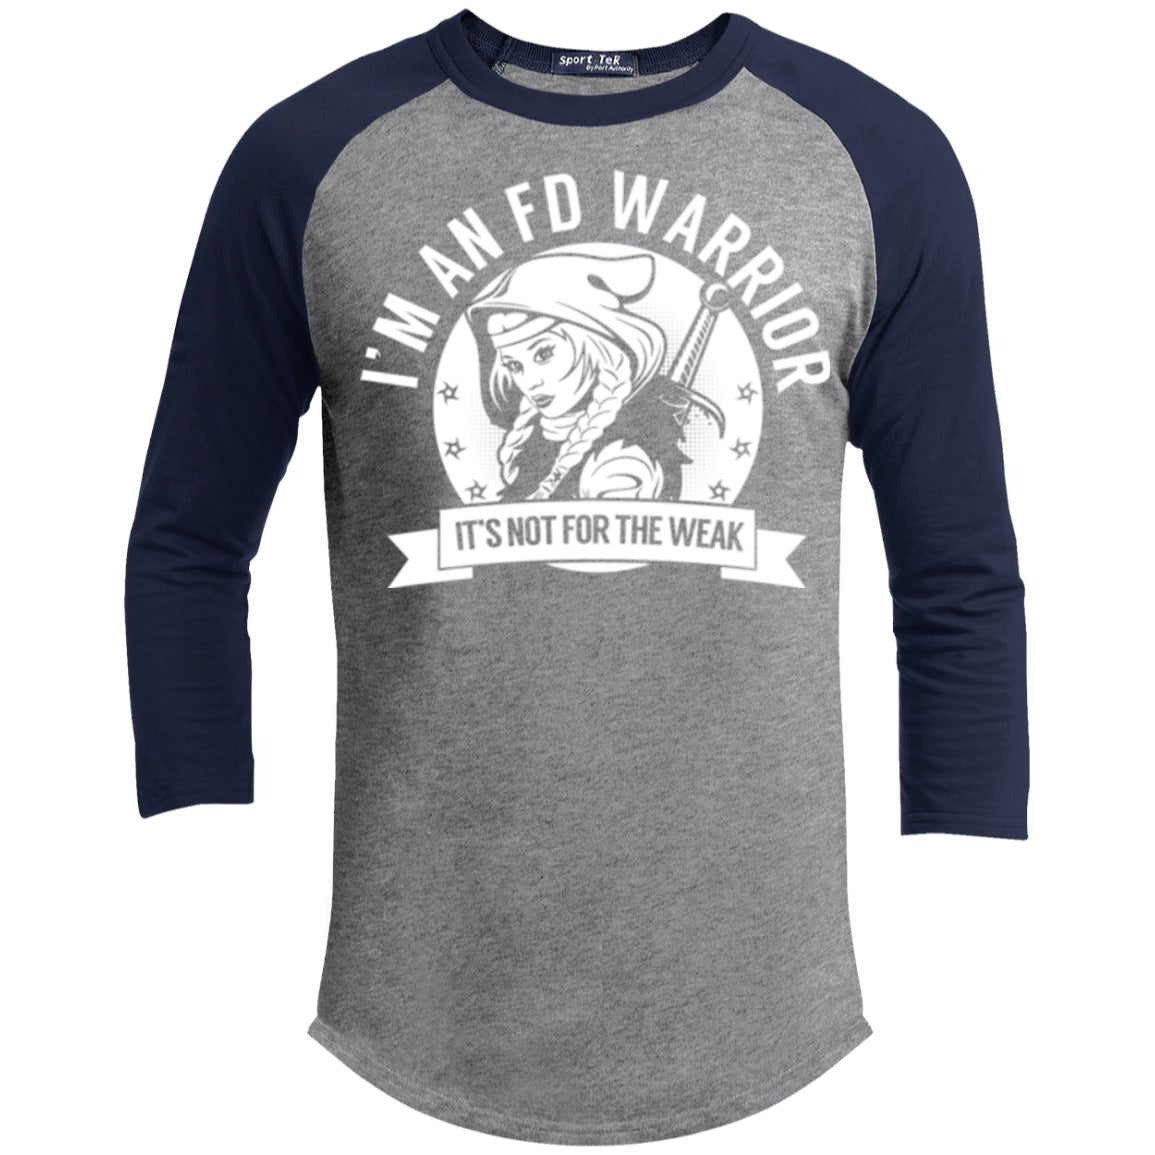 Fibrous Dysplasia - FD Warrior Hooded Baseball Shirt - The Unchargeables